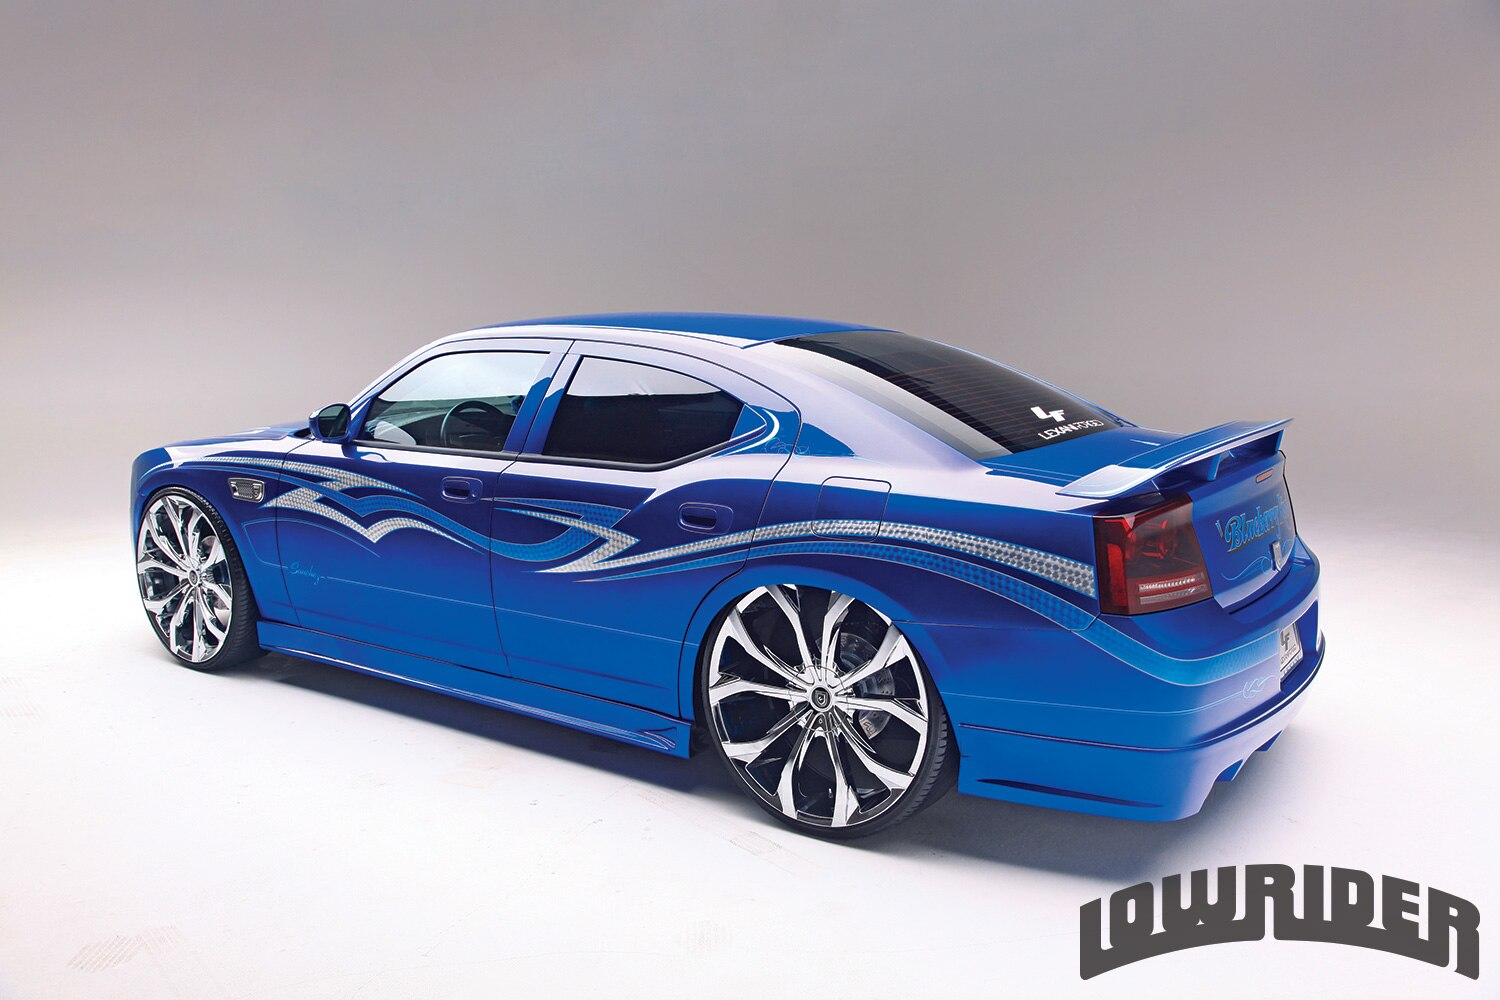 2008 Dodge Charger Lowrider Magazine